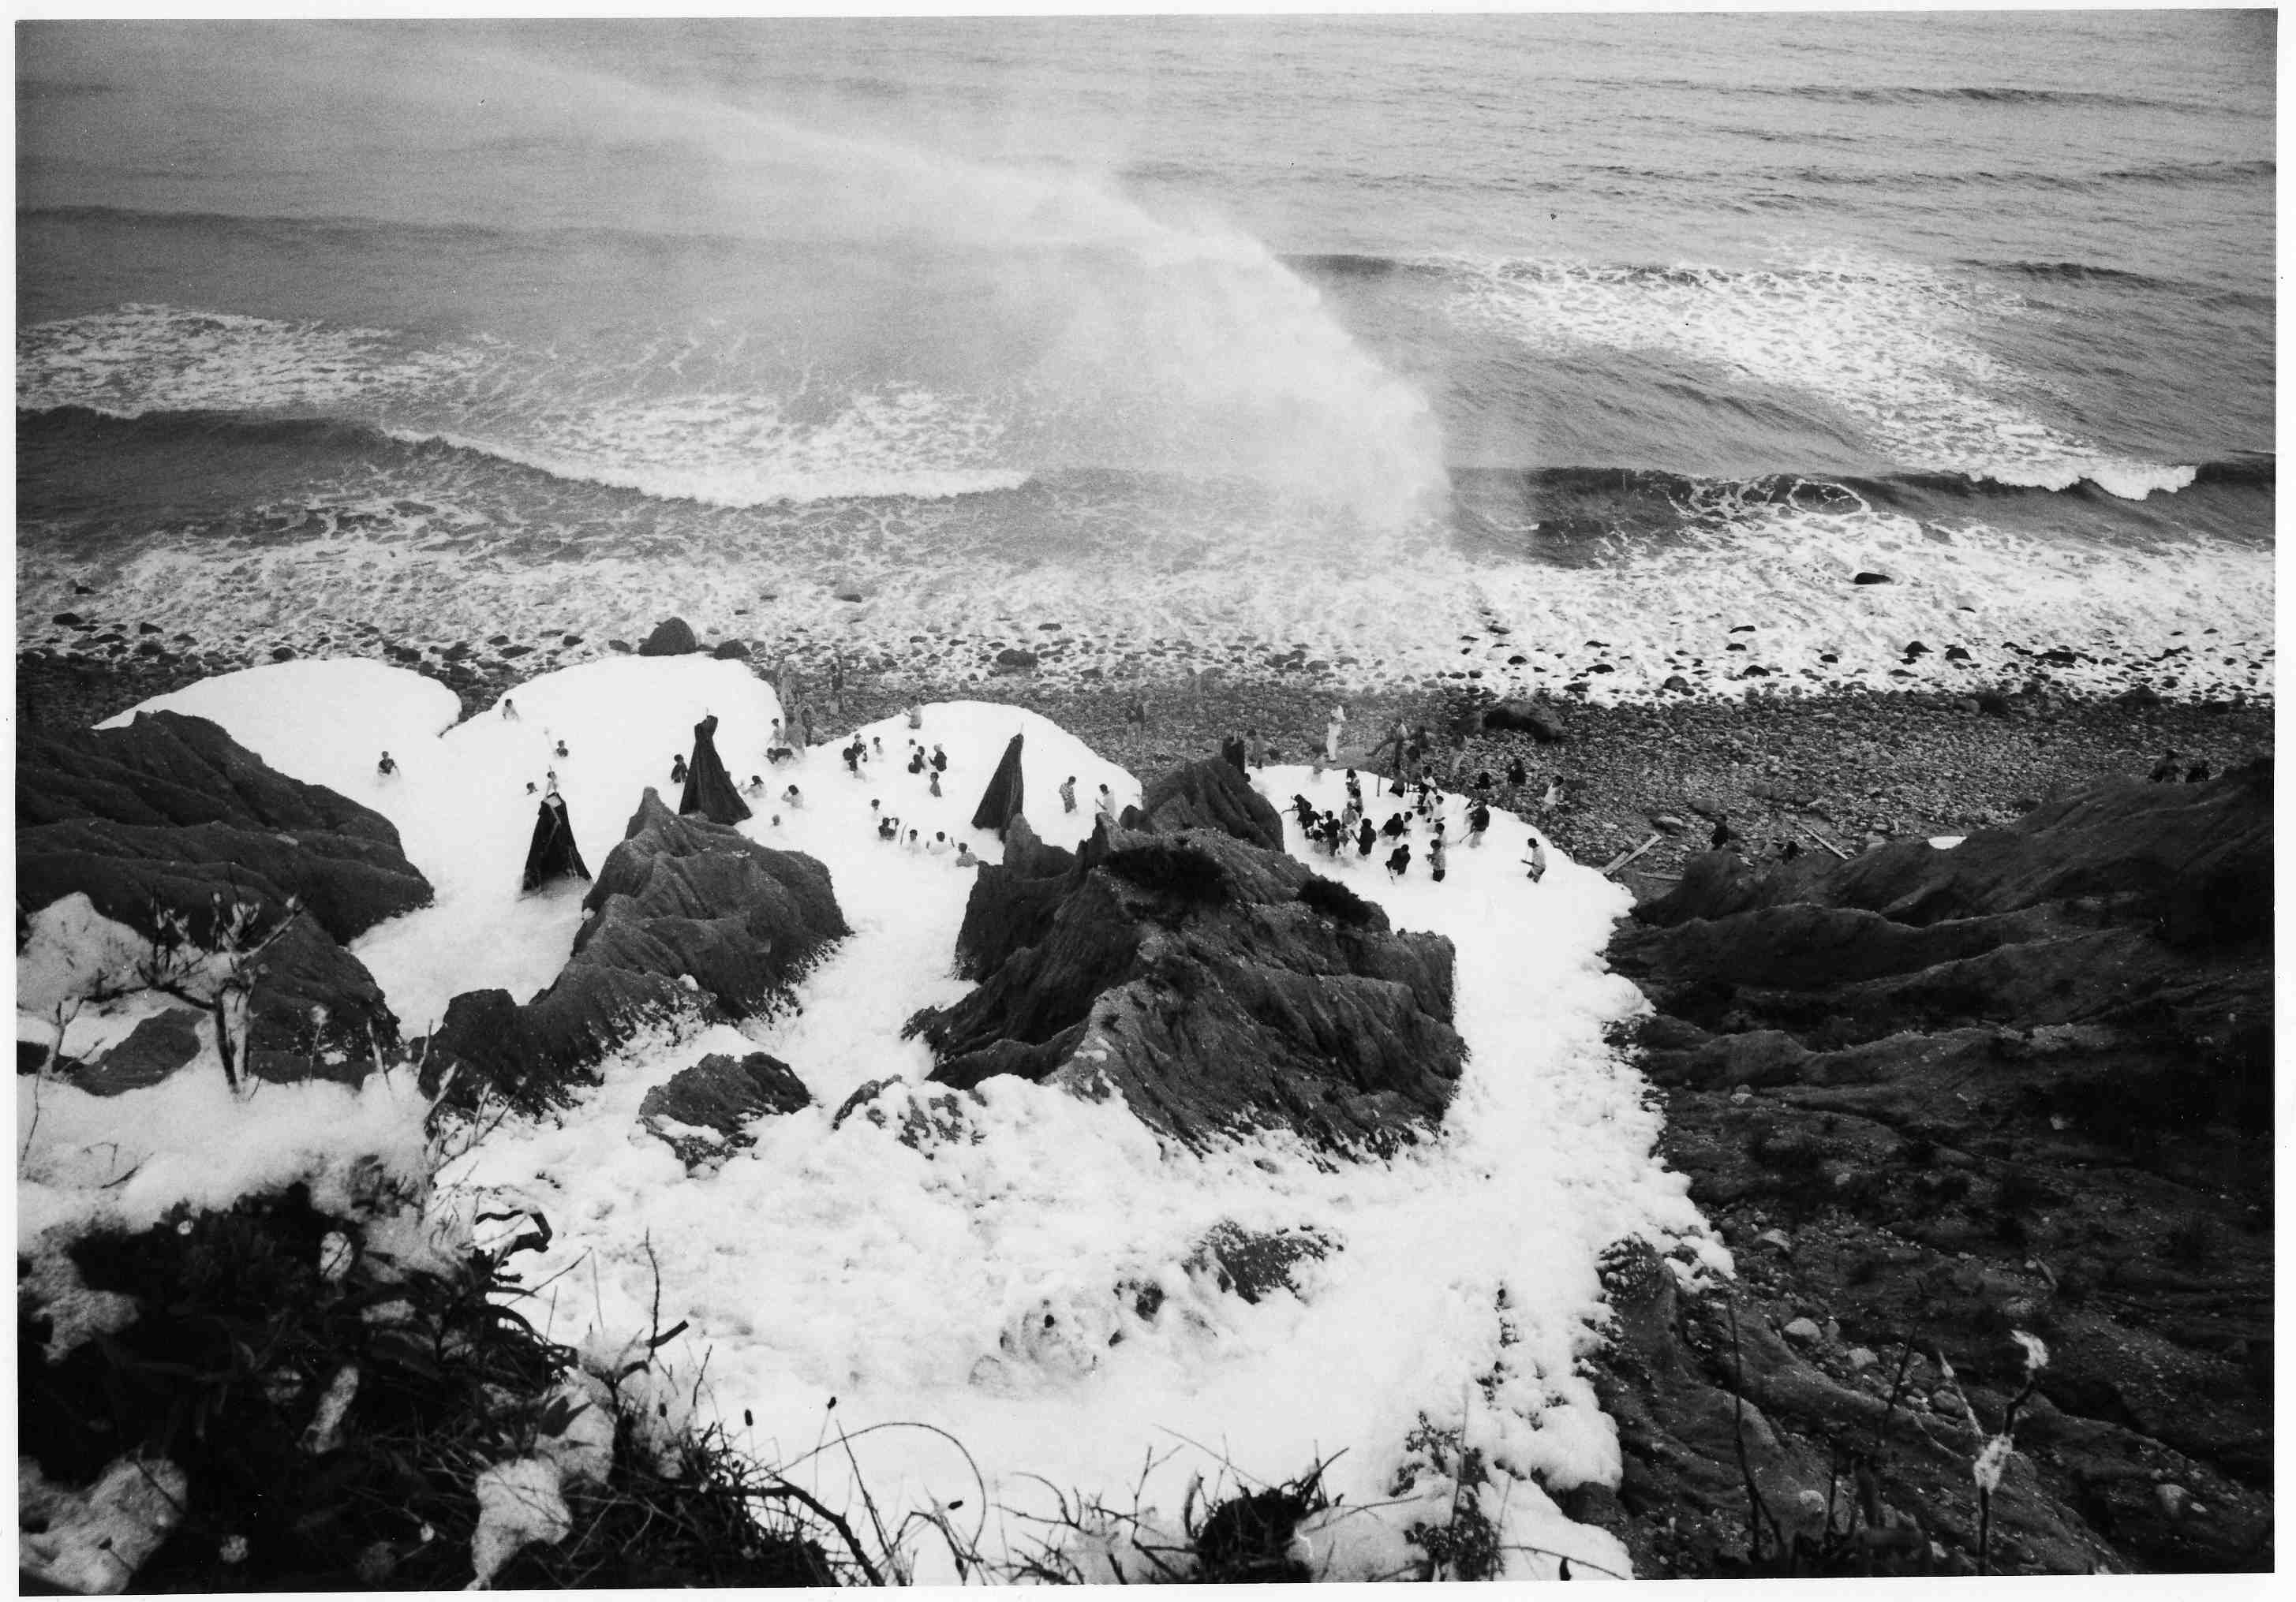 Foam at Montauk Point, Sunday, August 7, 1966